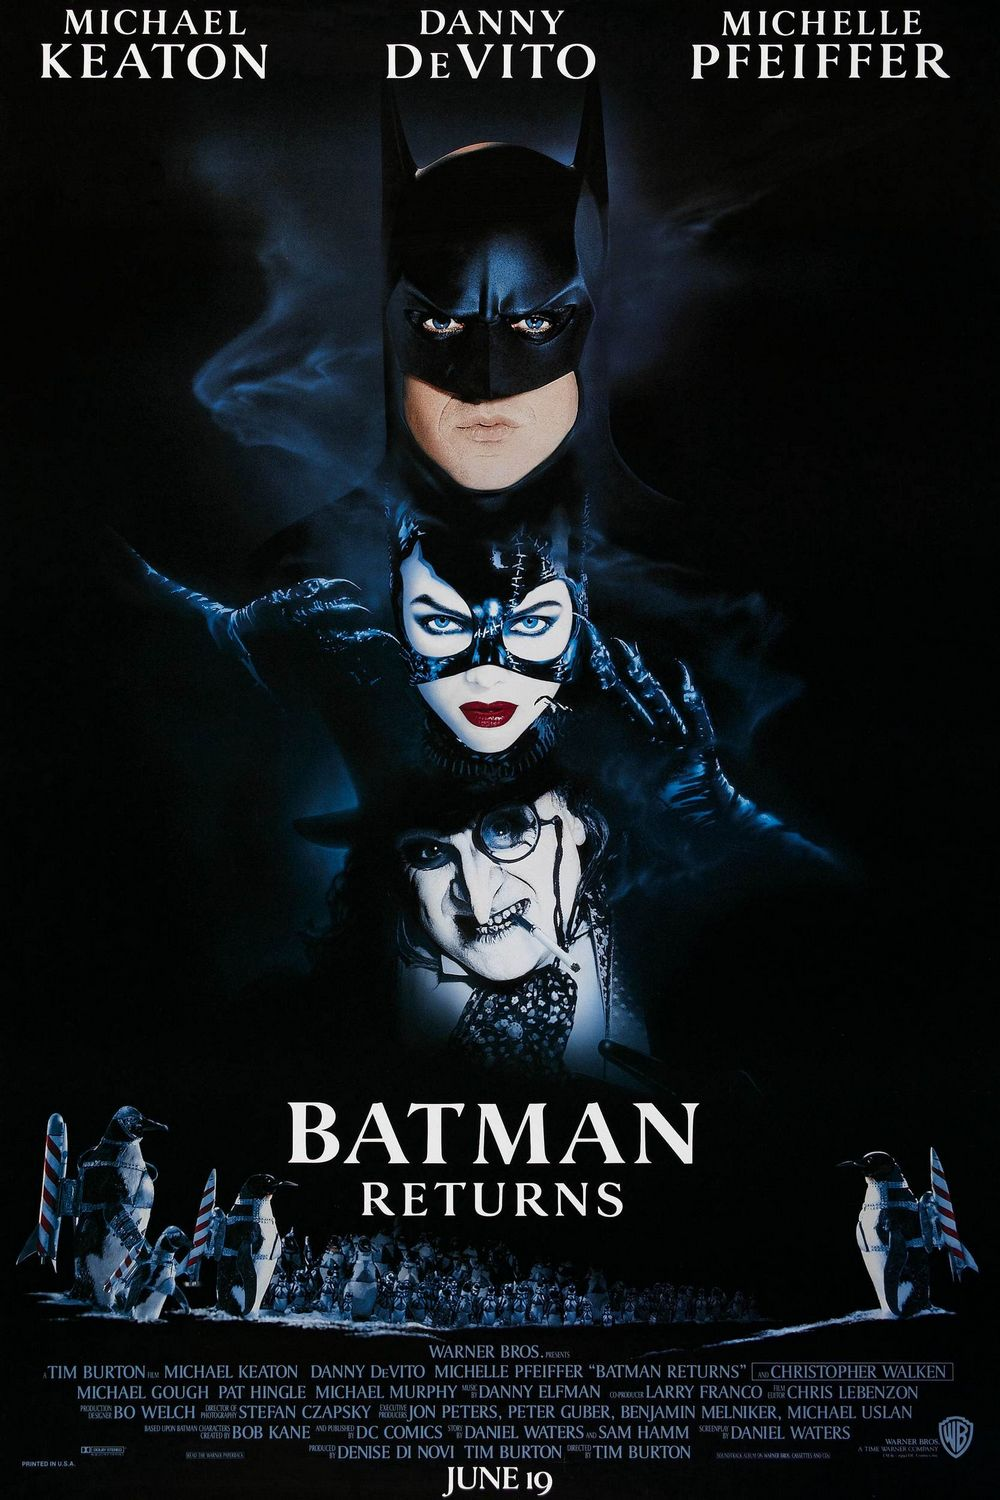 Batman Returns - film poster 1992